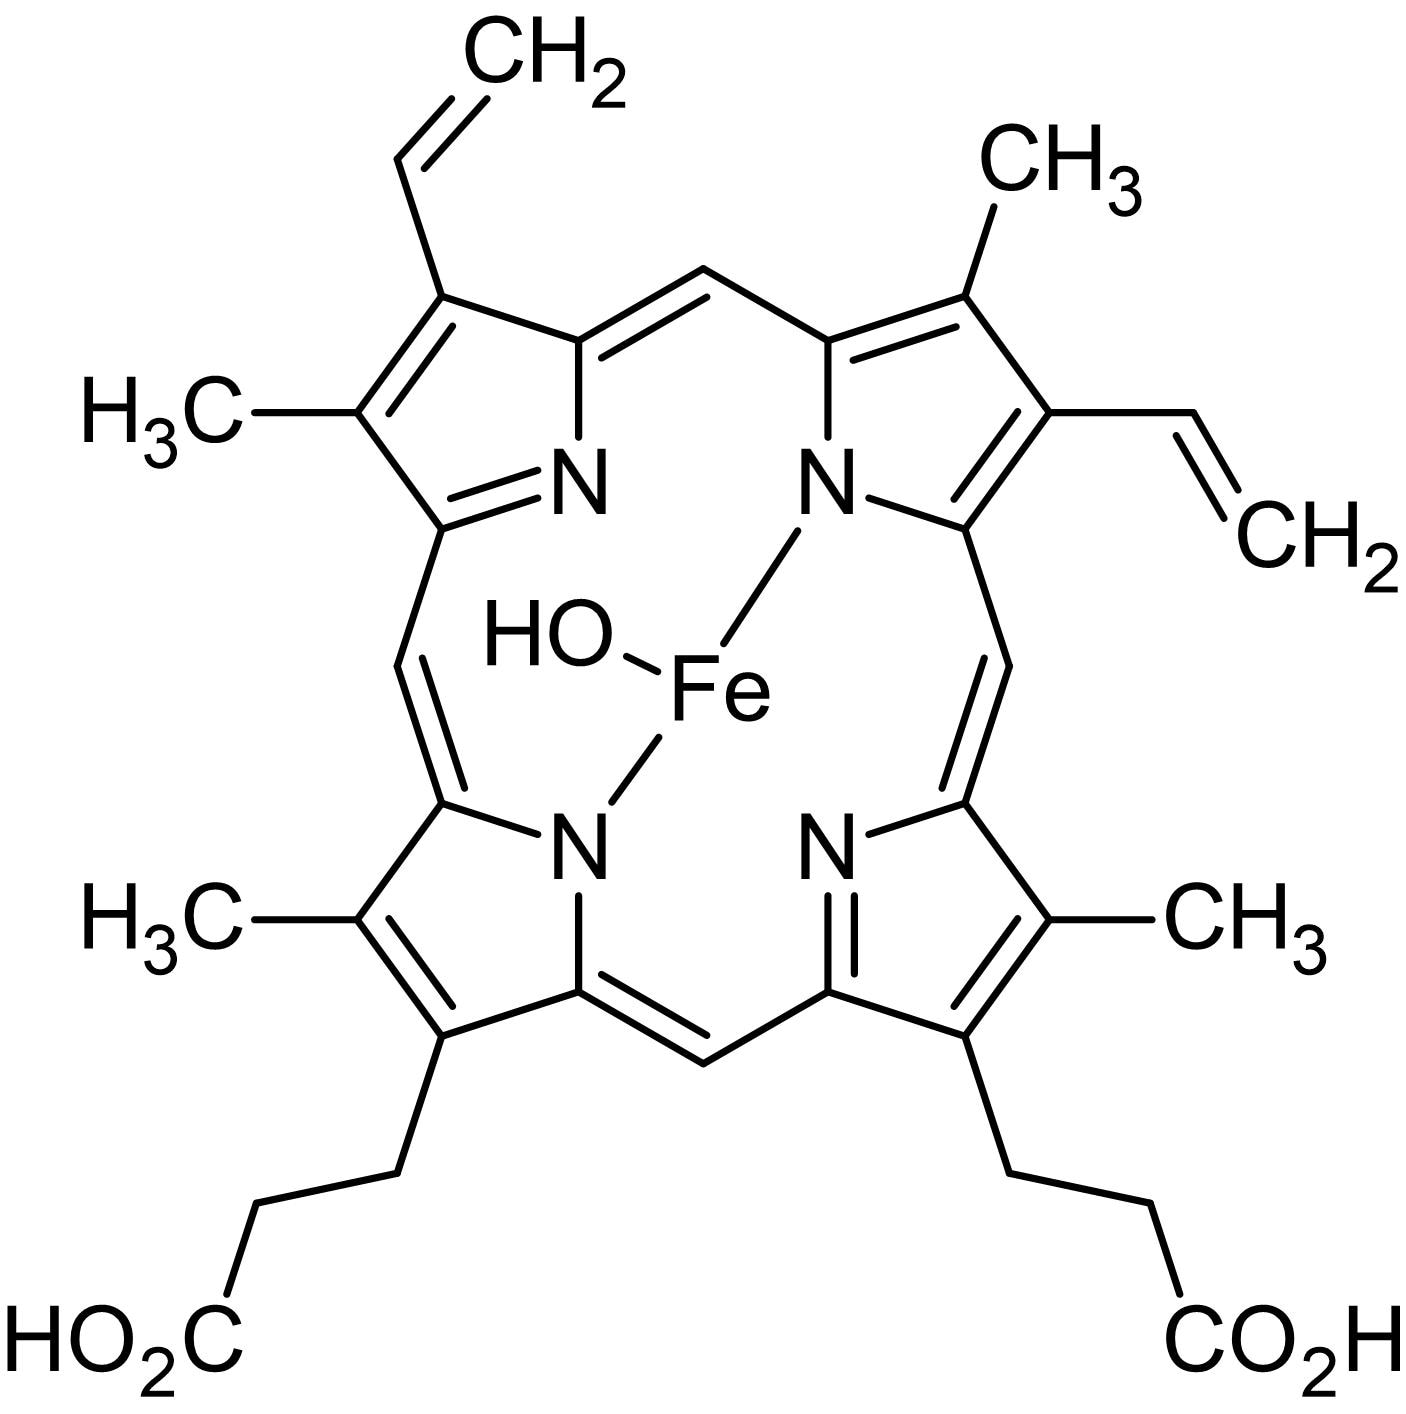 Chemical Structure - Hematin, Iron-containing porphyrin (ab146273)